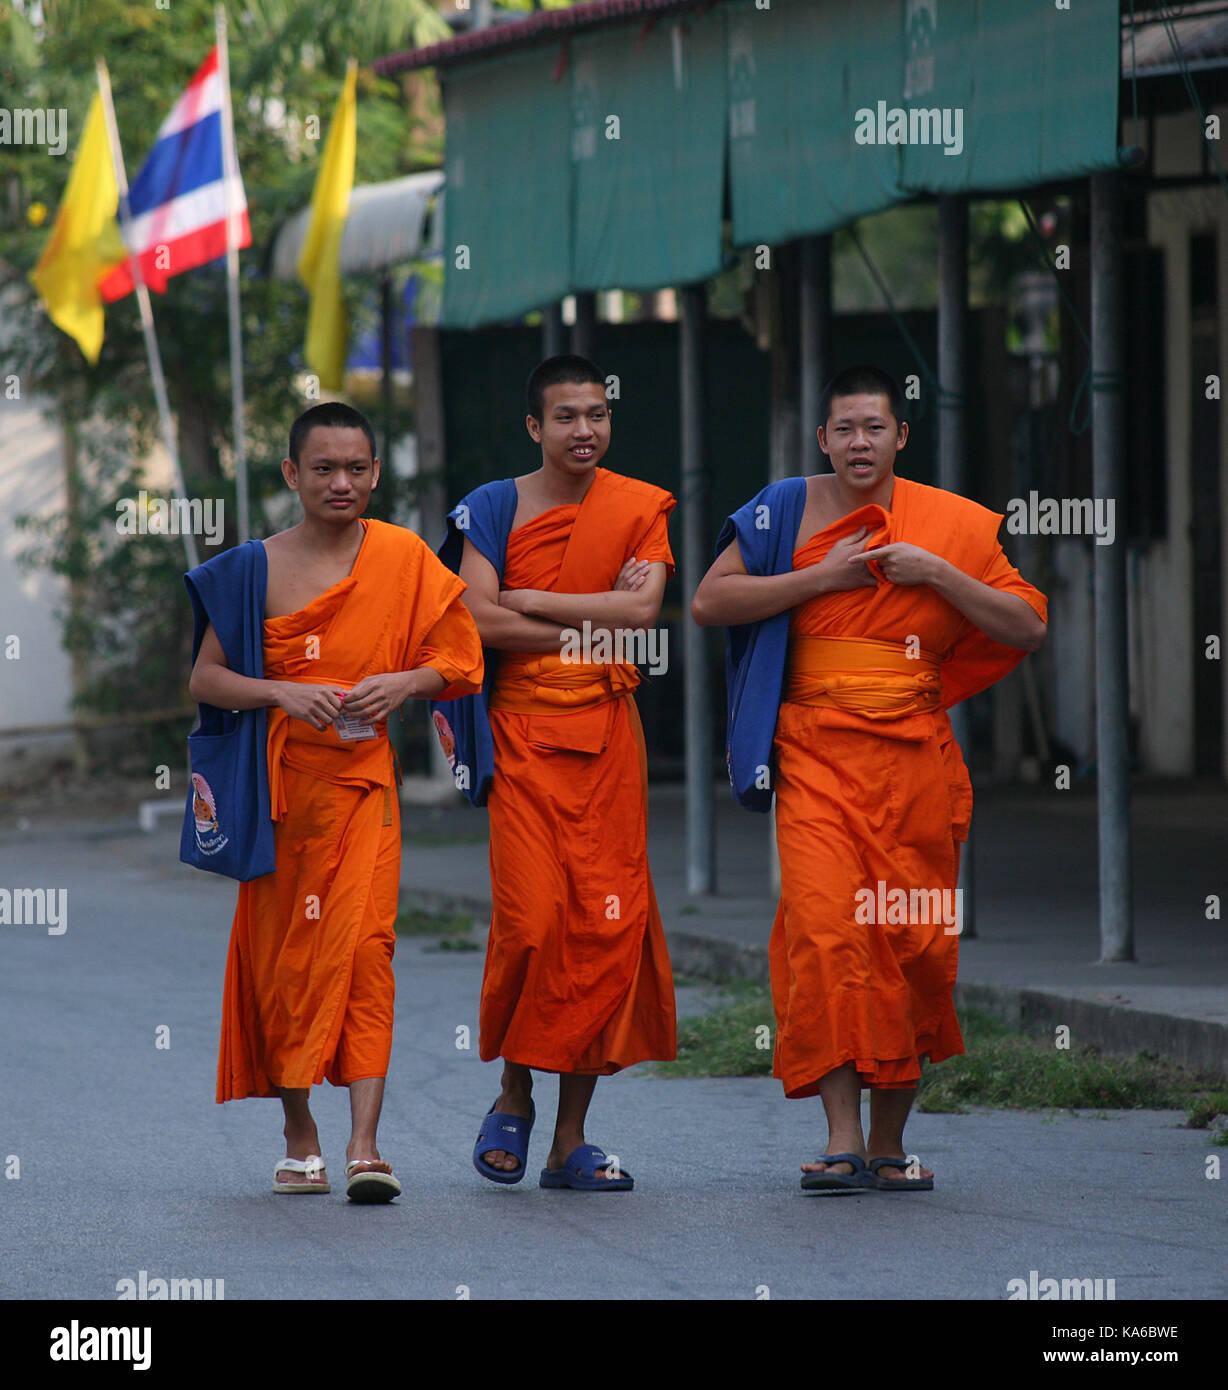 Daily life in a Buddhist monastery. The monks go to the city to collect alms. - Stock Image